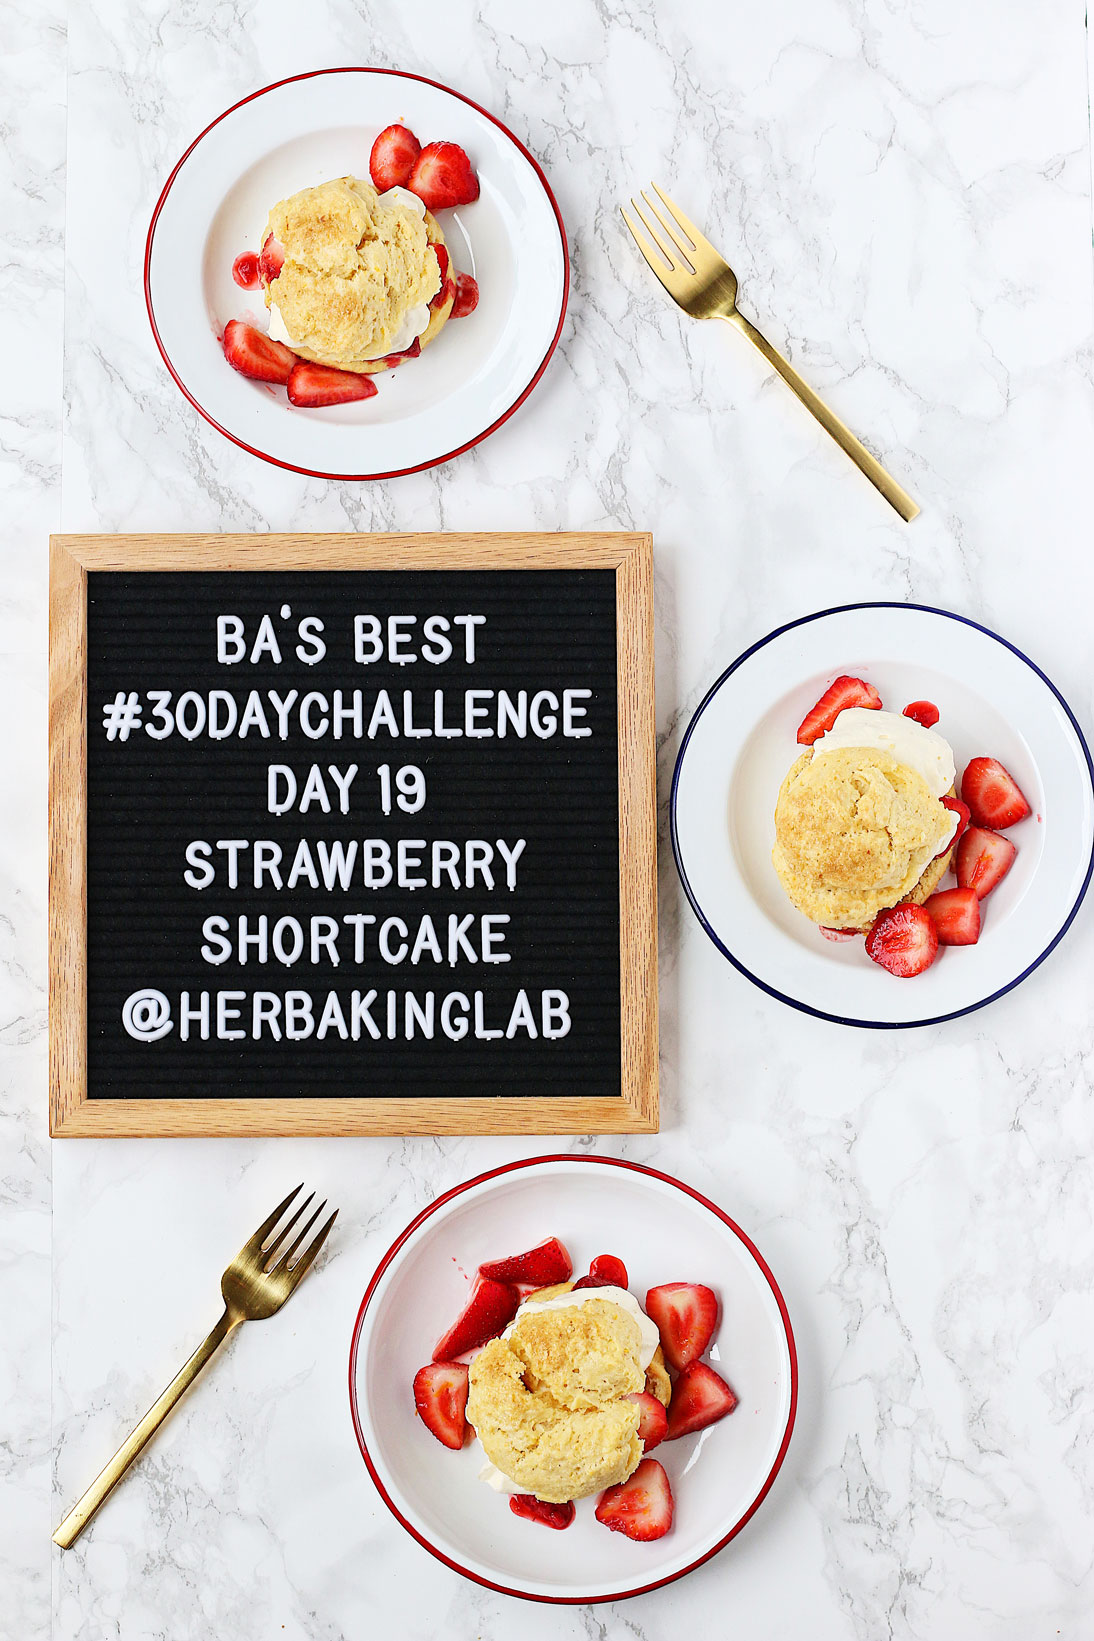 #ba30daychallenge-bon-appetit-best-recipes-day-19-strawberry-shortcake